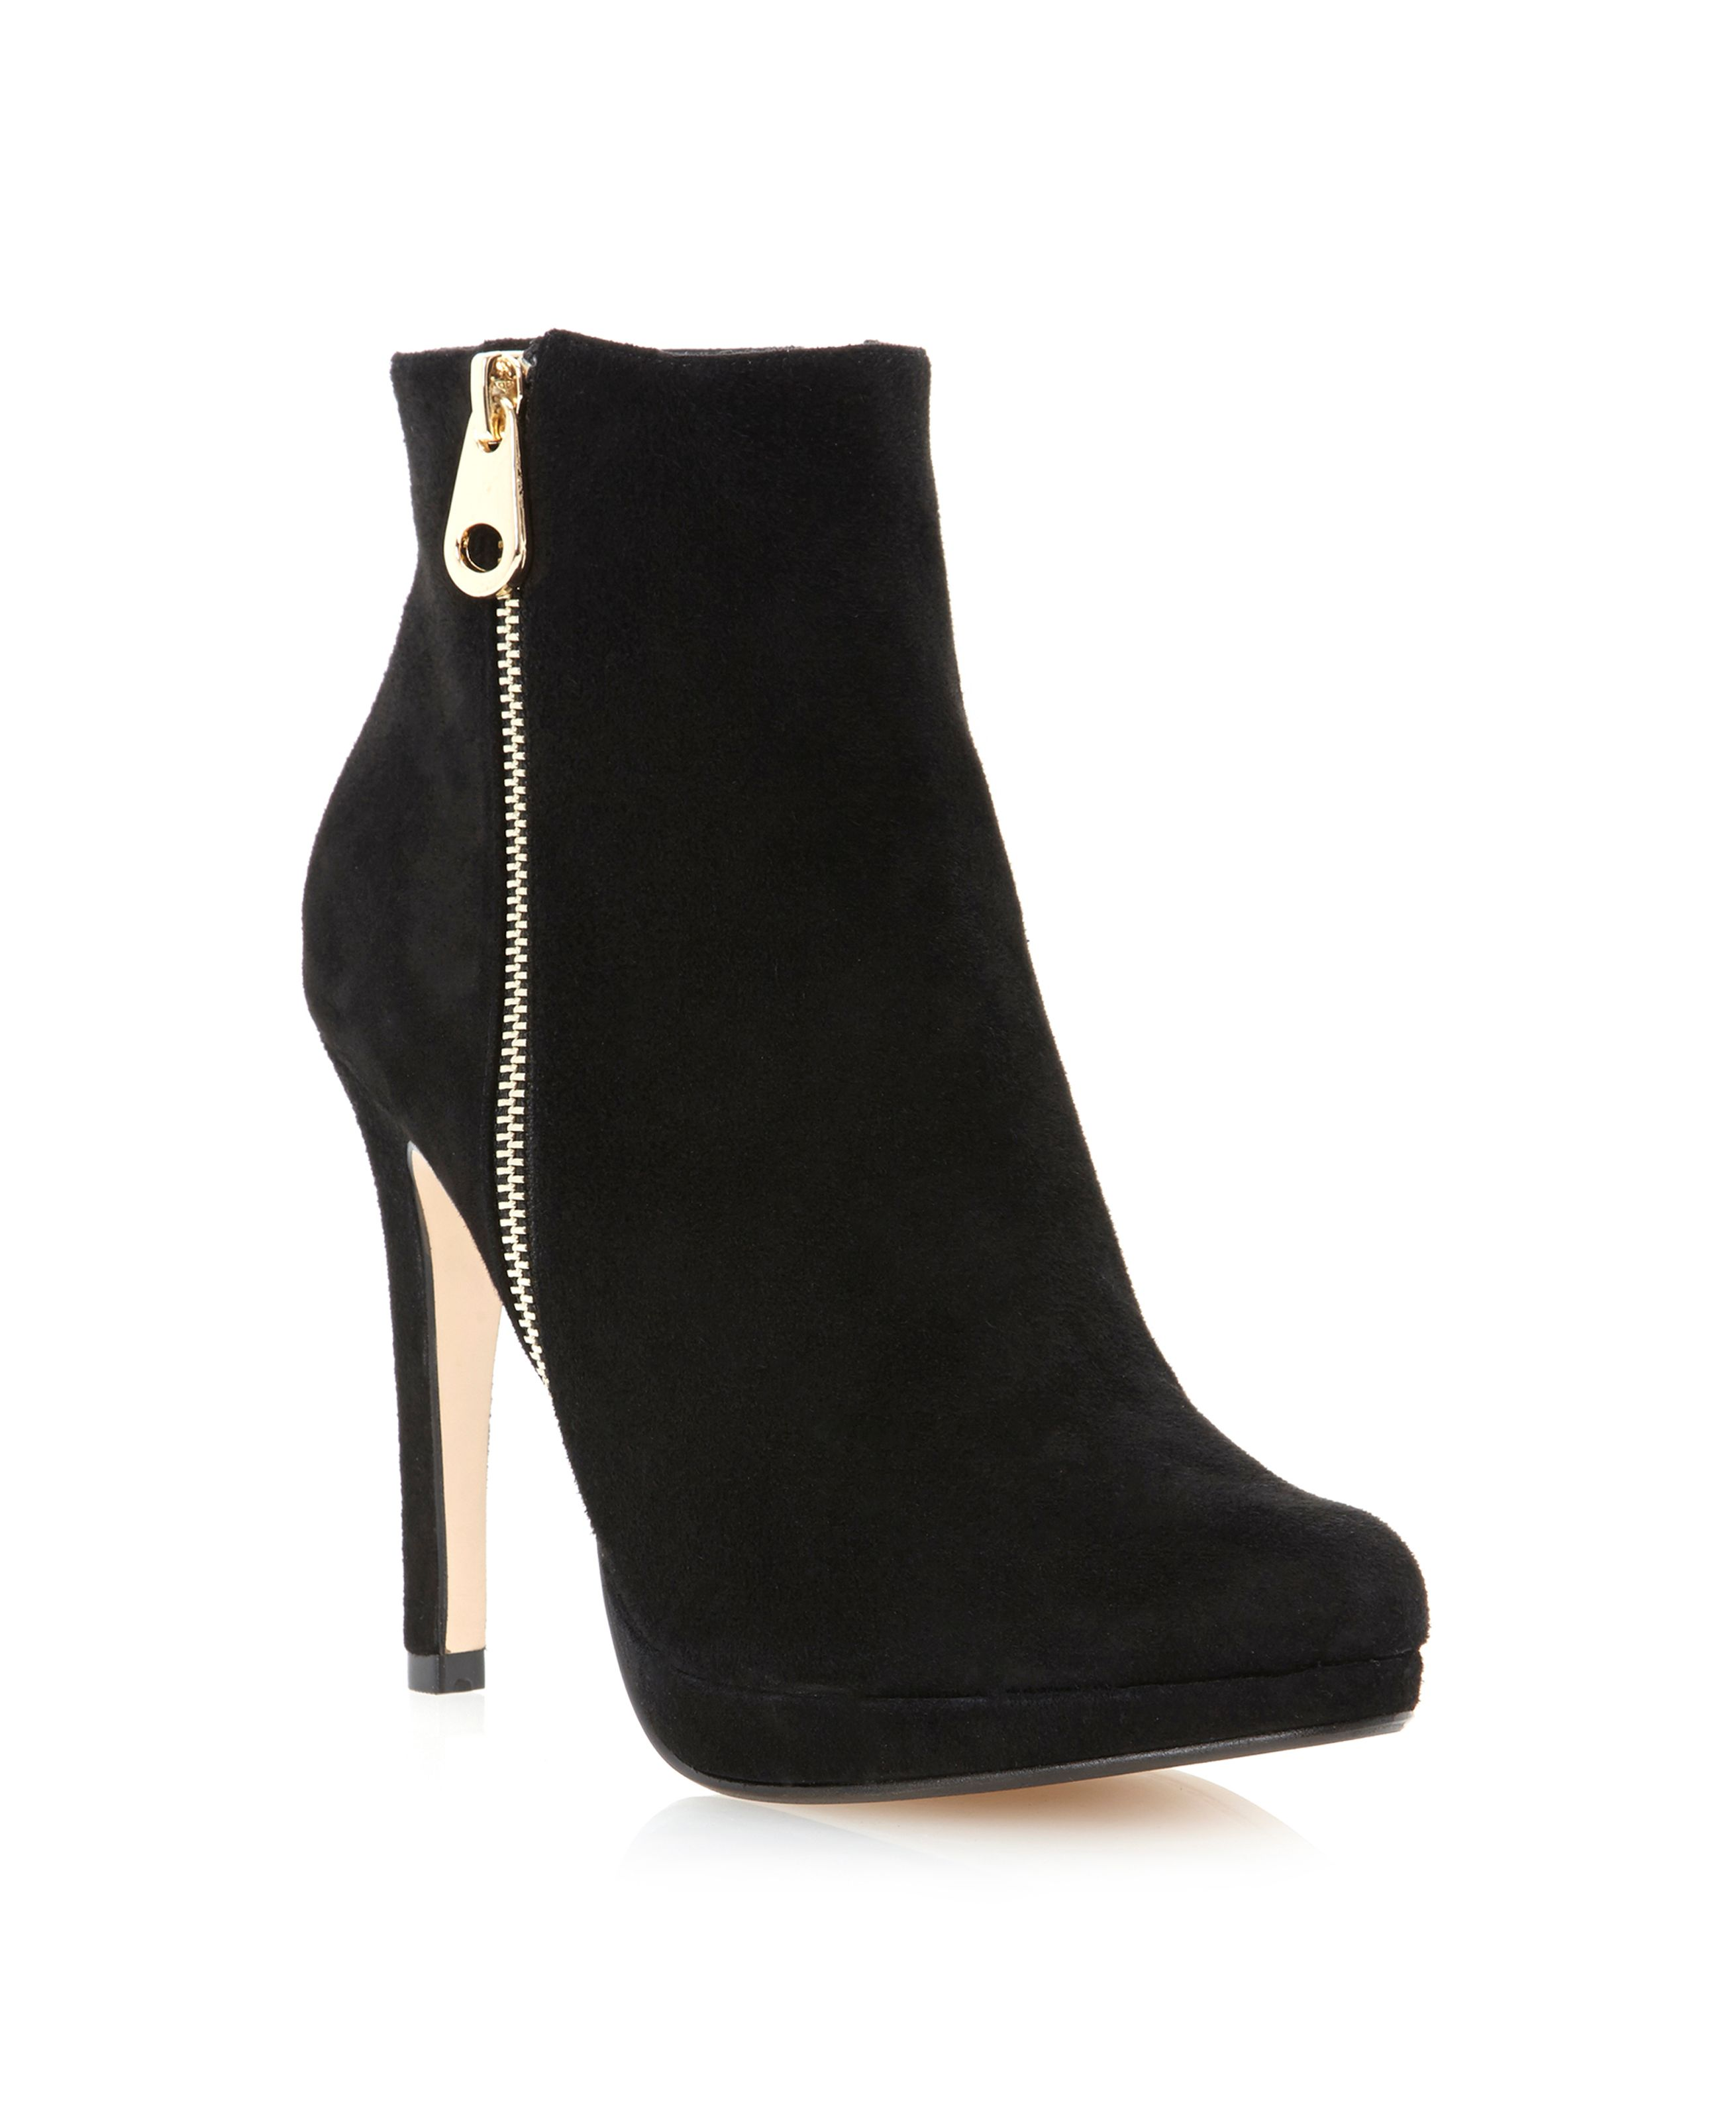 Niks-side gold zip platform boots